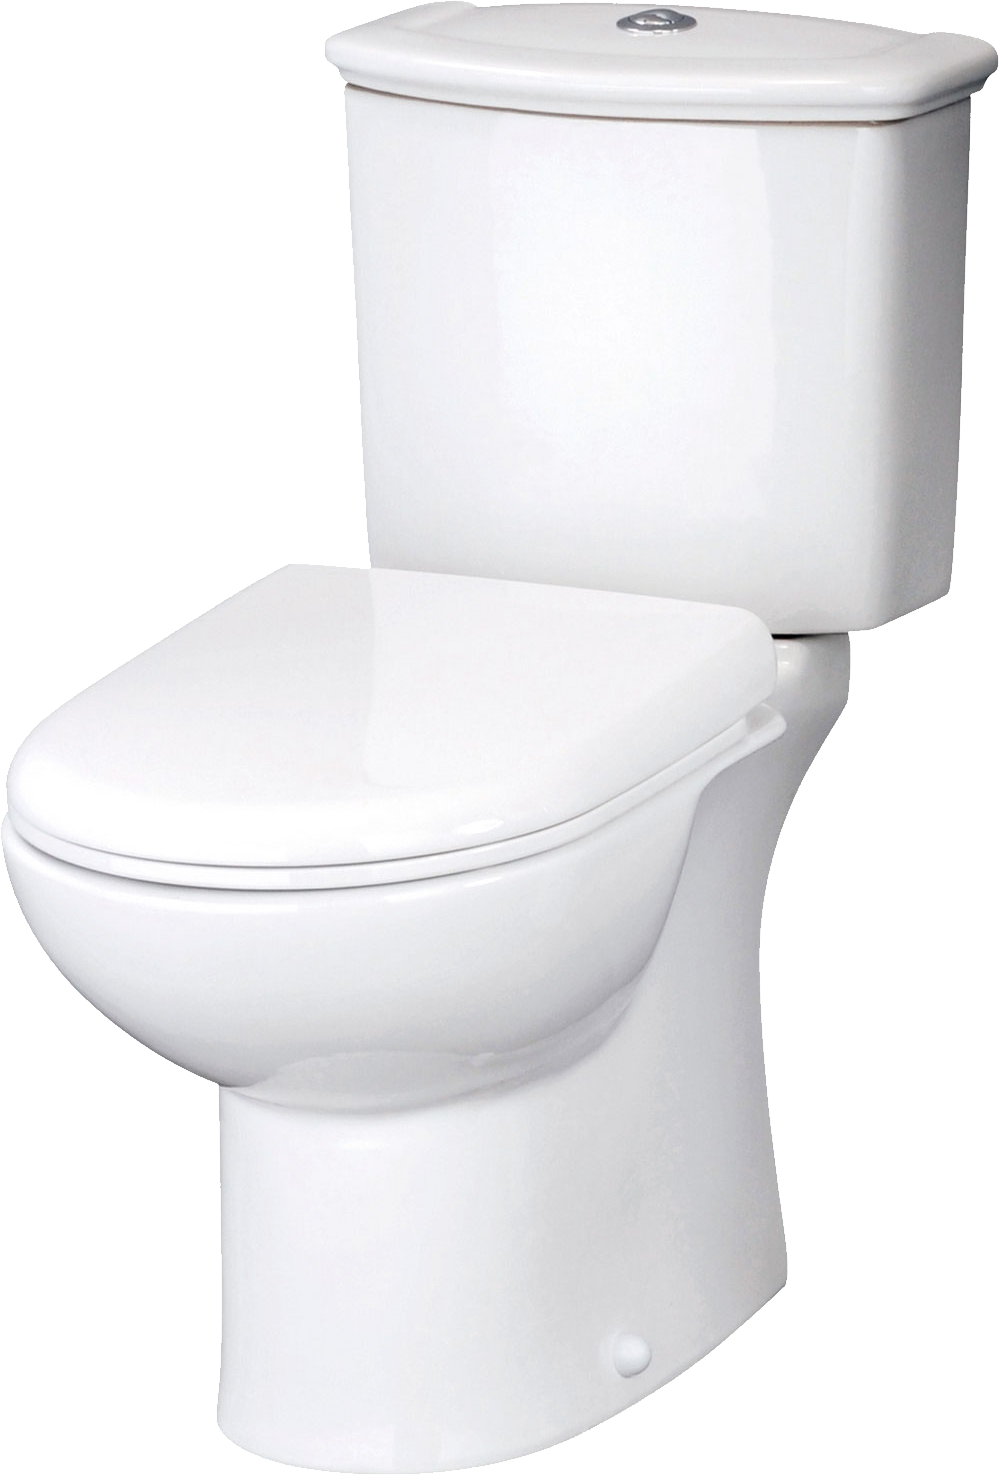 Png toilet. Image without background web